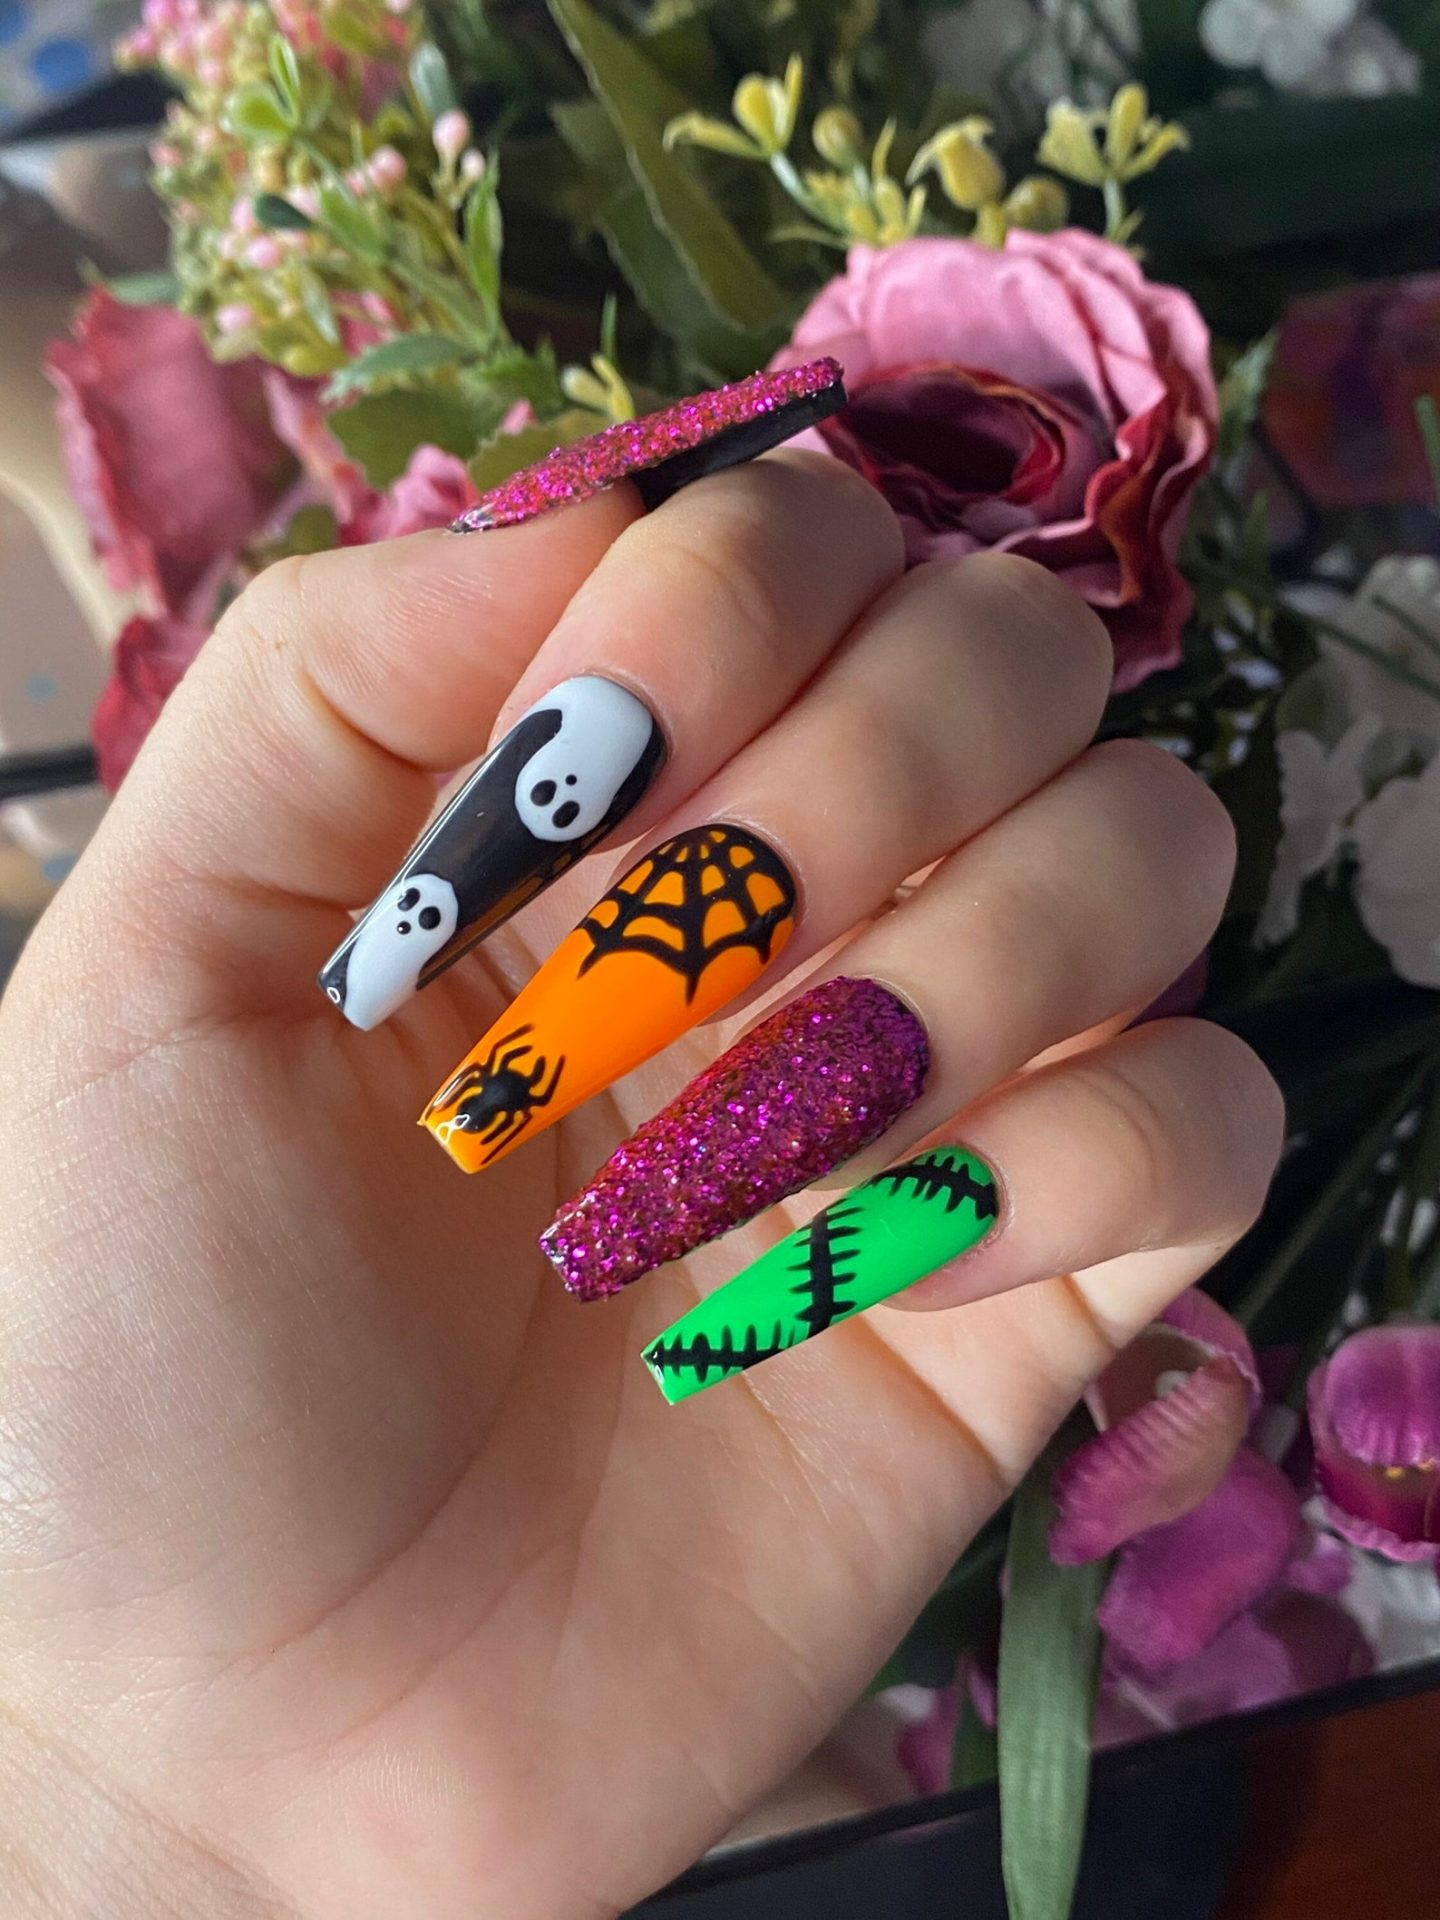 Cute long coffin nails for Halloween in orange, green, purple and black